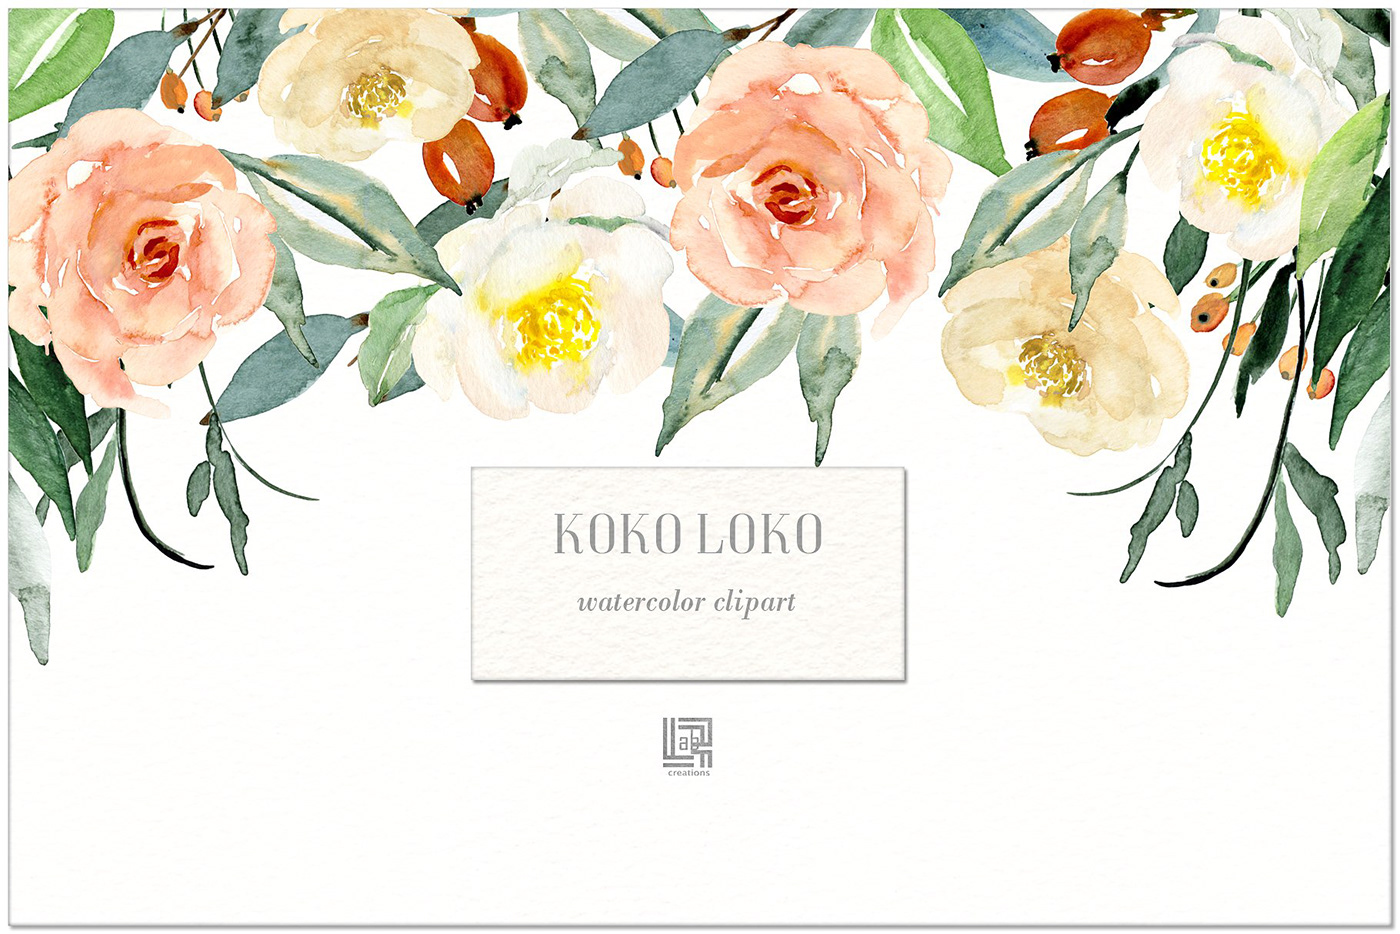 Koko Loko. Watercolor floral clipart FREE DOWNLOAD! on Behance.